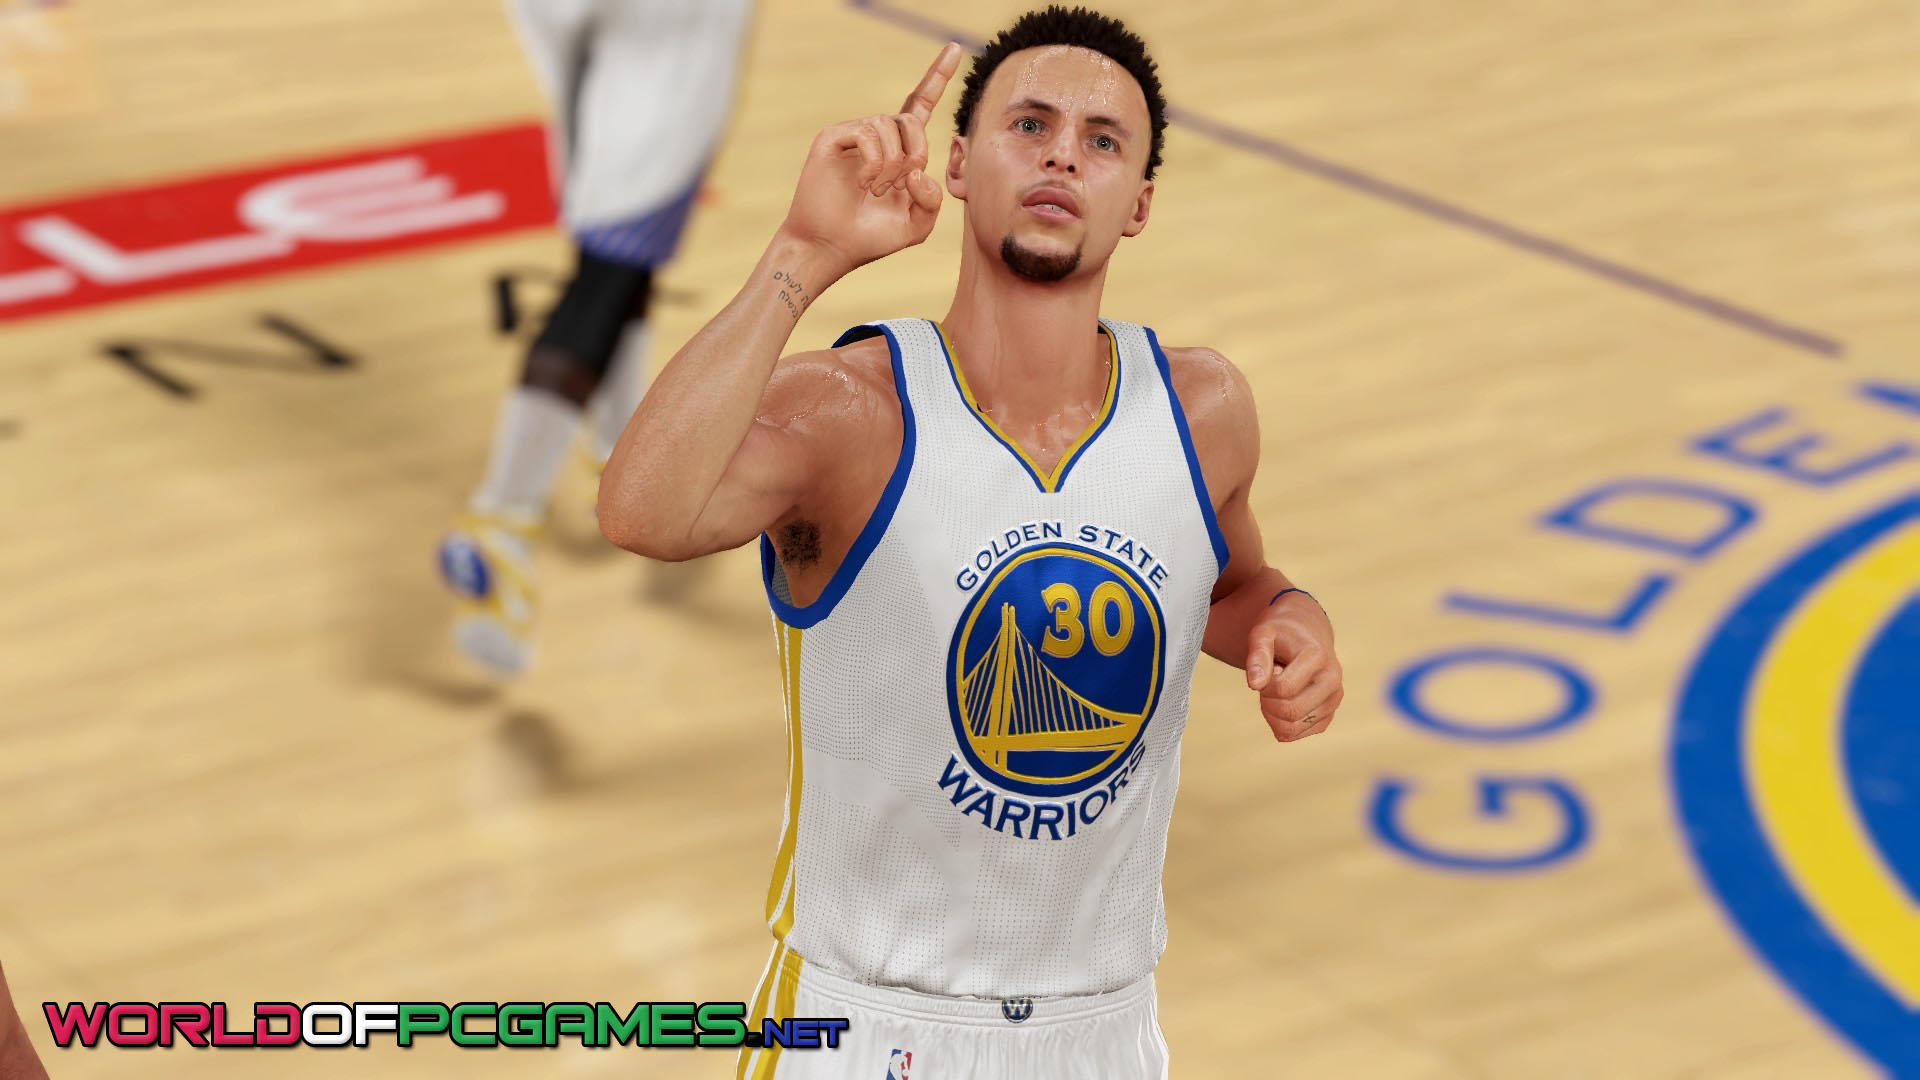 nba2k16 apk free download for pc